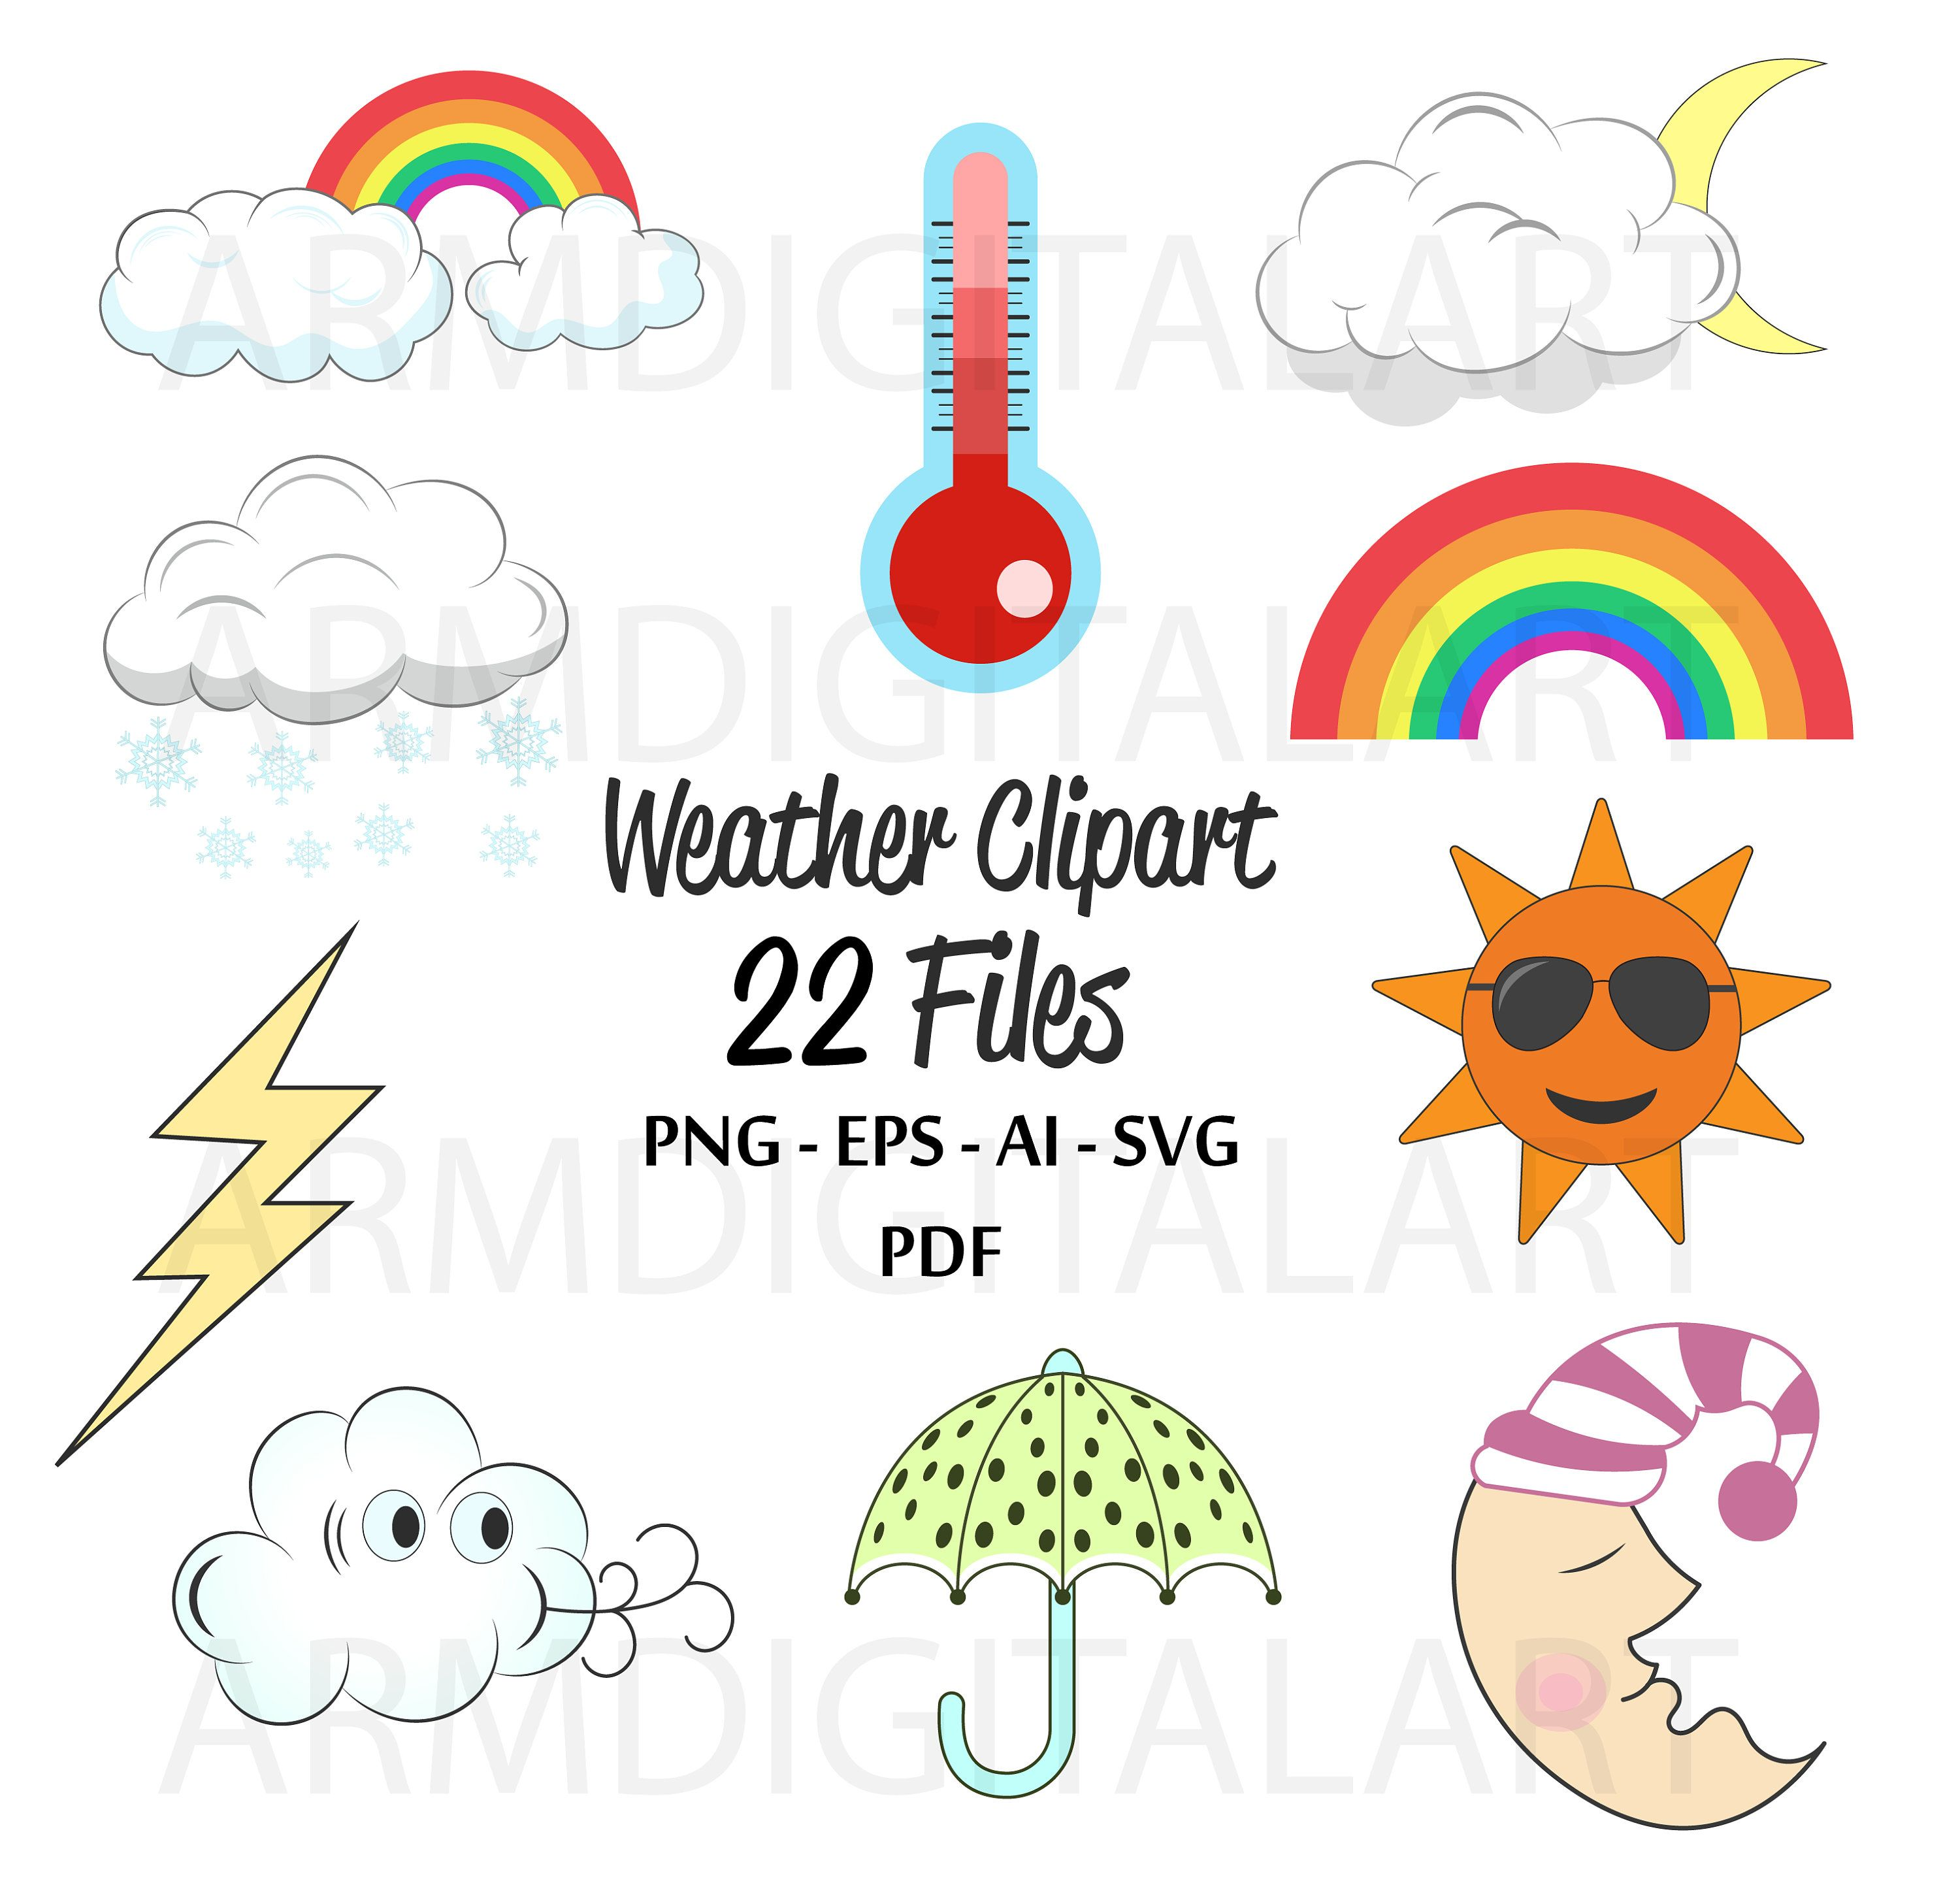 small resolution of weather clipart weather graphics commercial use forecast clipart planner accessories weather icons cloud clipart sun vector files by armdigitalart